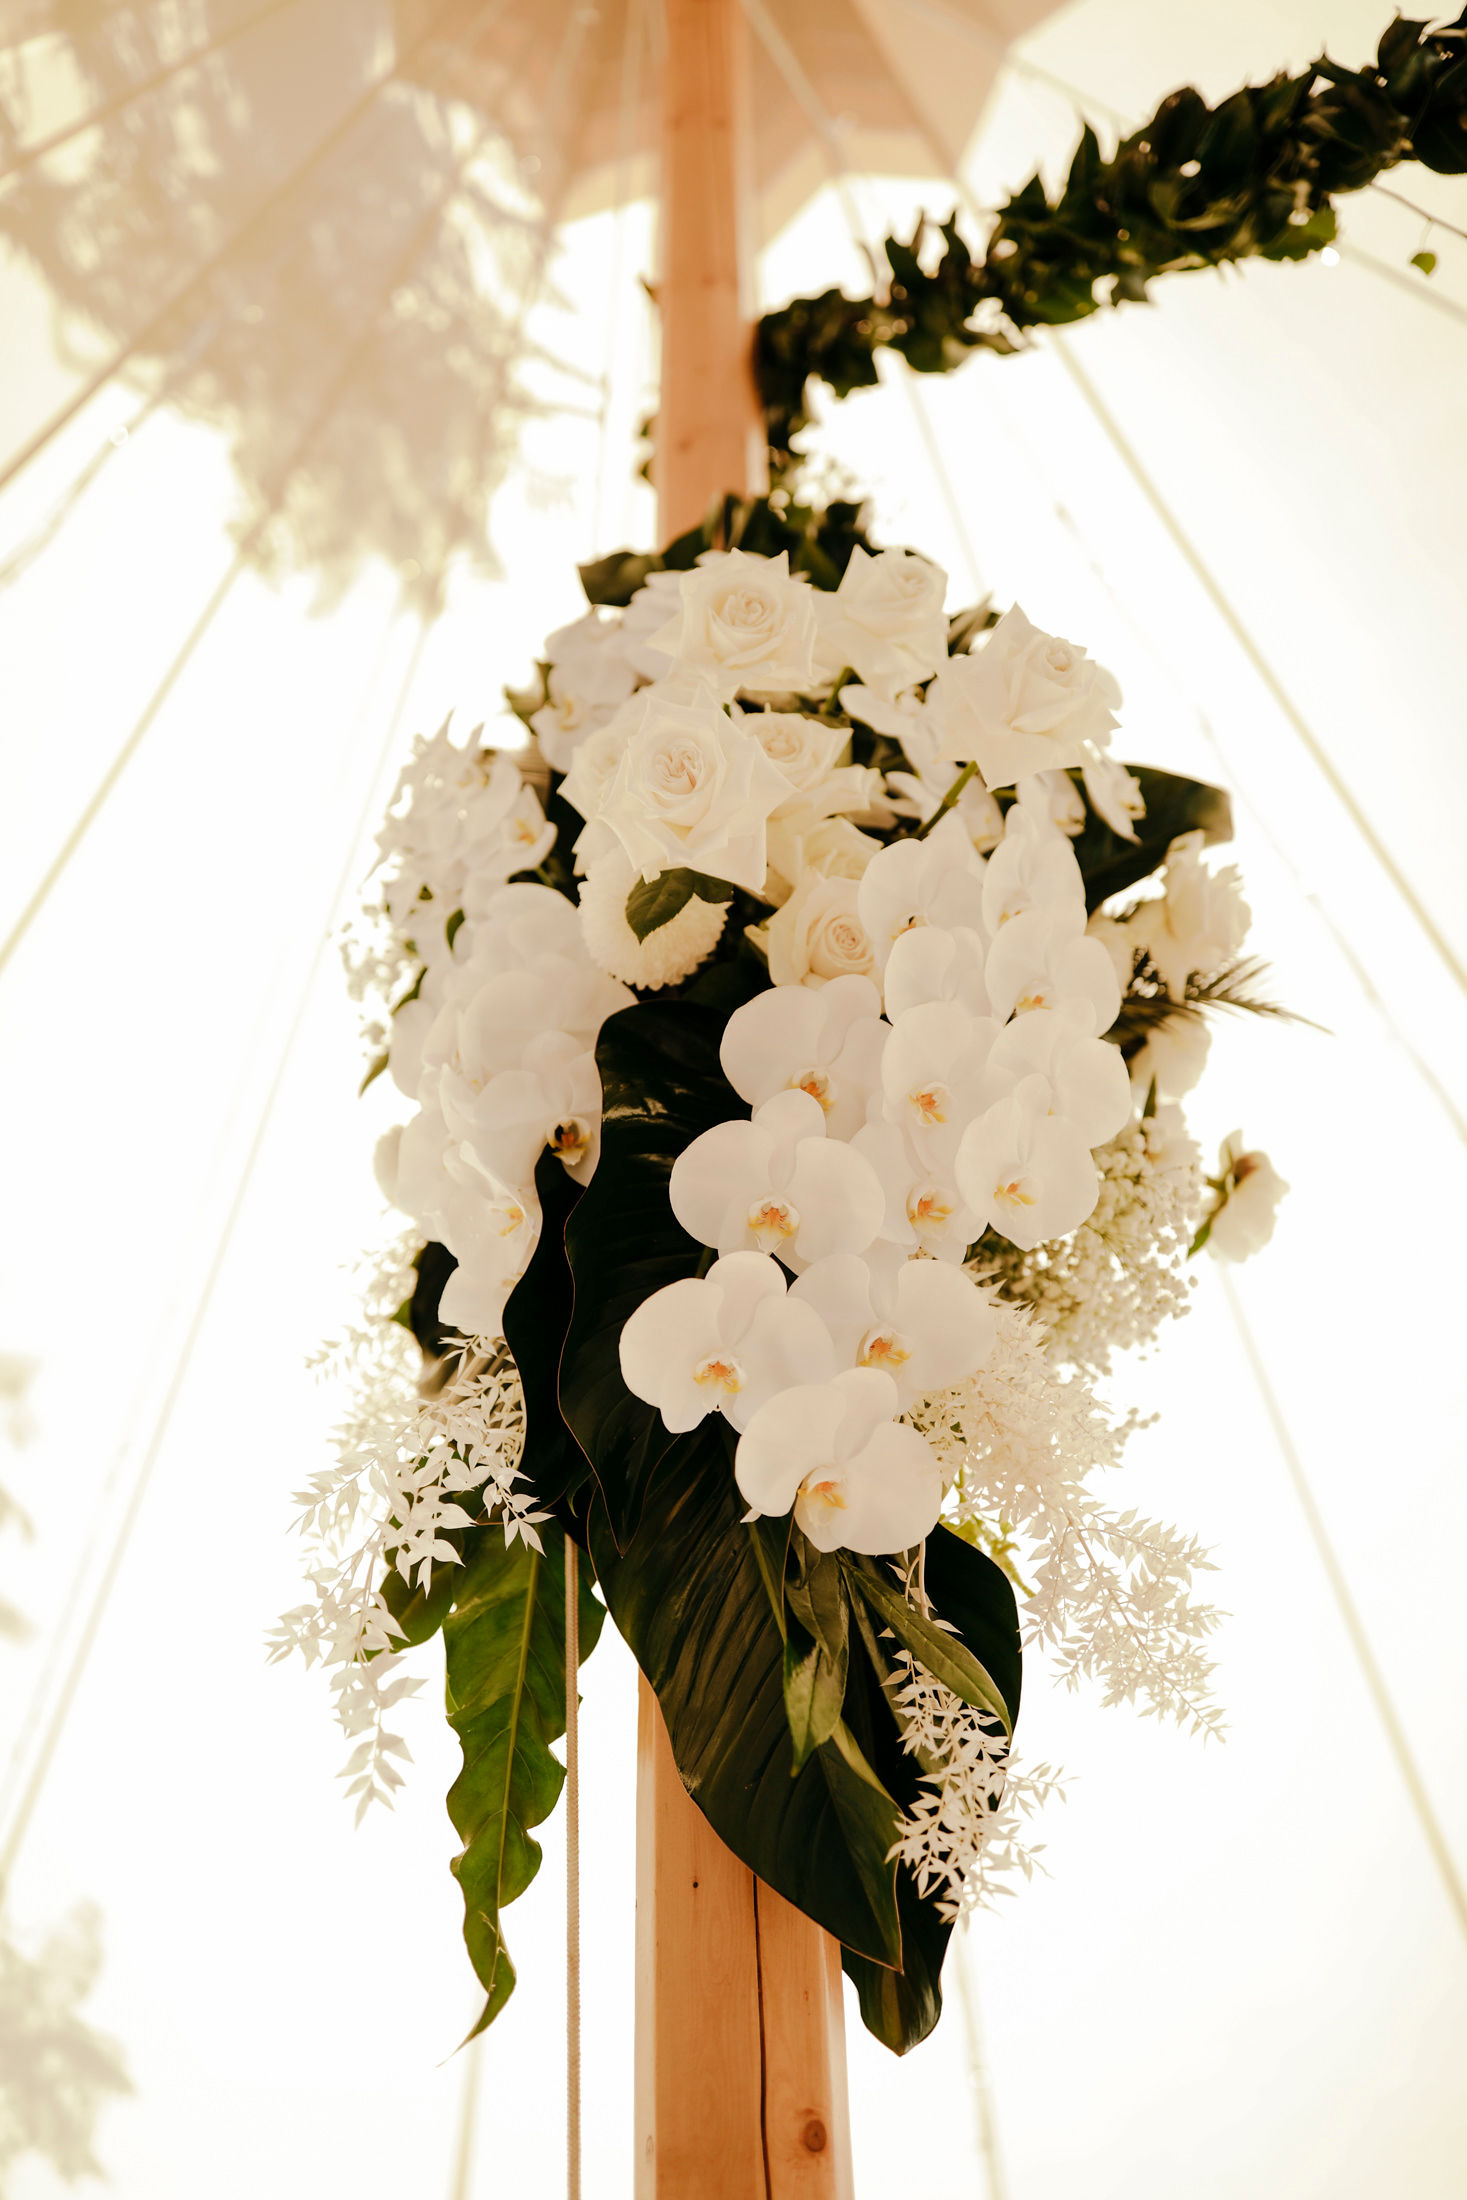 Moderna and Chic Wedding Reception Style